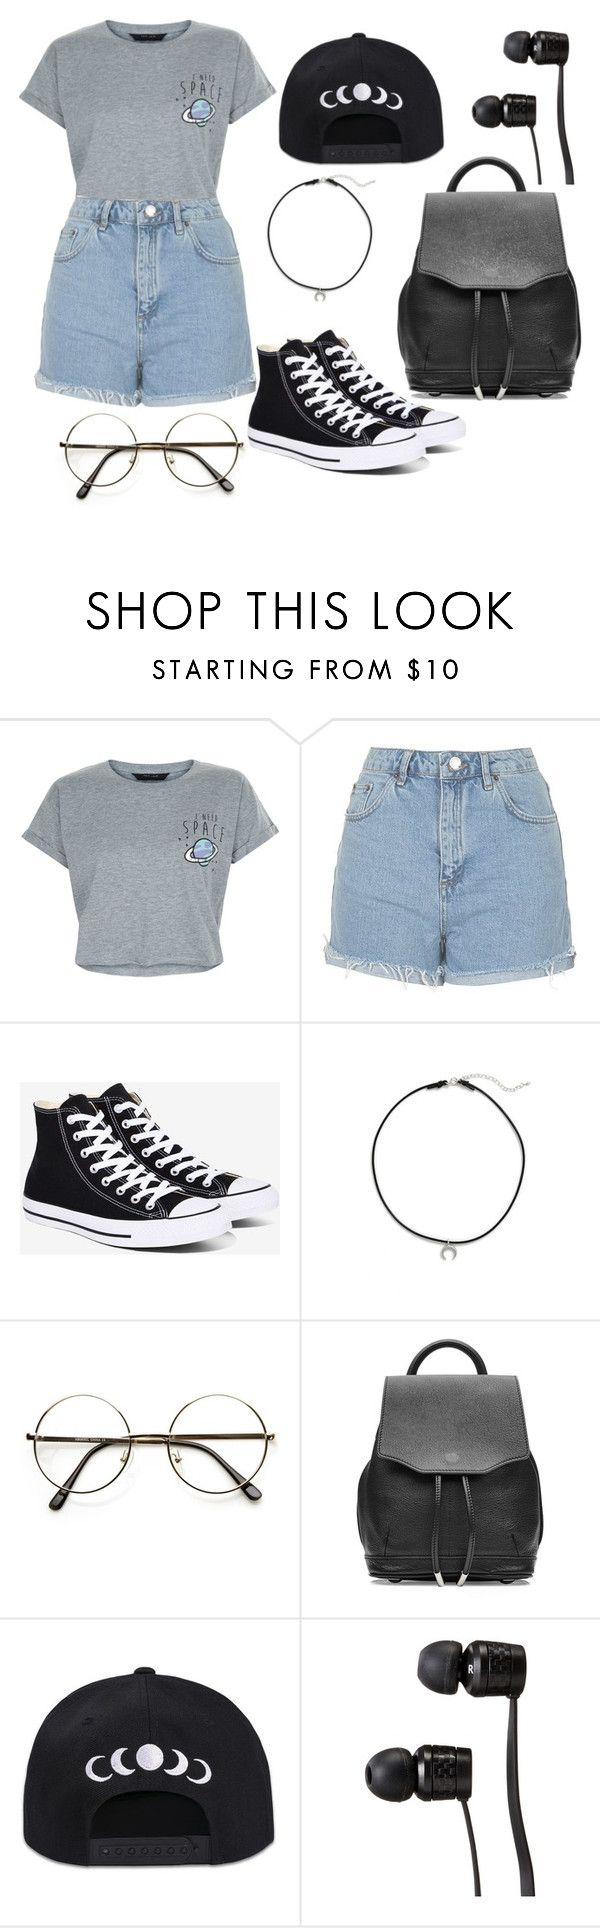 """""""I NEED SPACE"""" by as-pretty-as-the-moon ❤ liked on Polyvore featuring New Look, Topshop, Converse, Dogeared, rag & bone and Vans"""